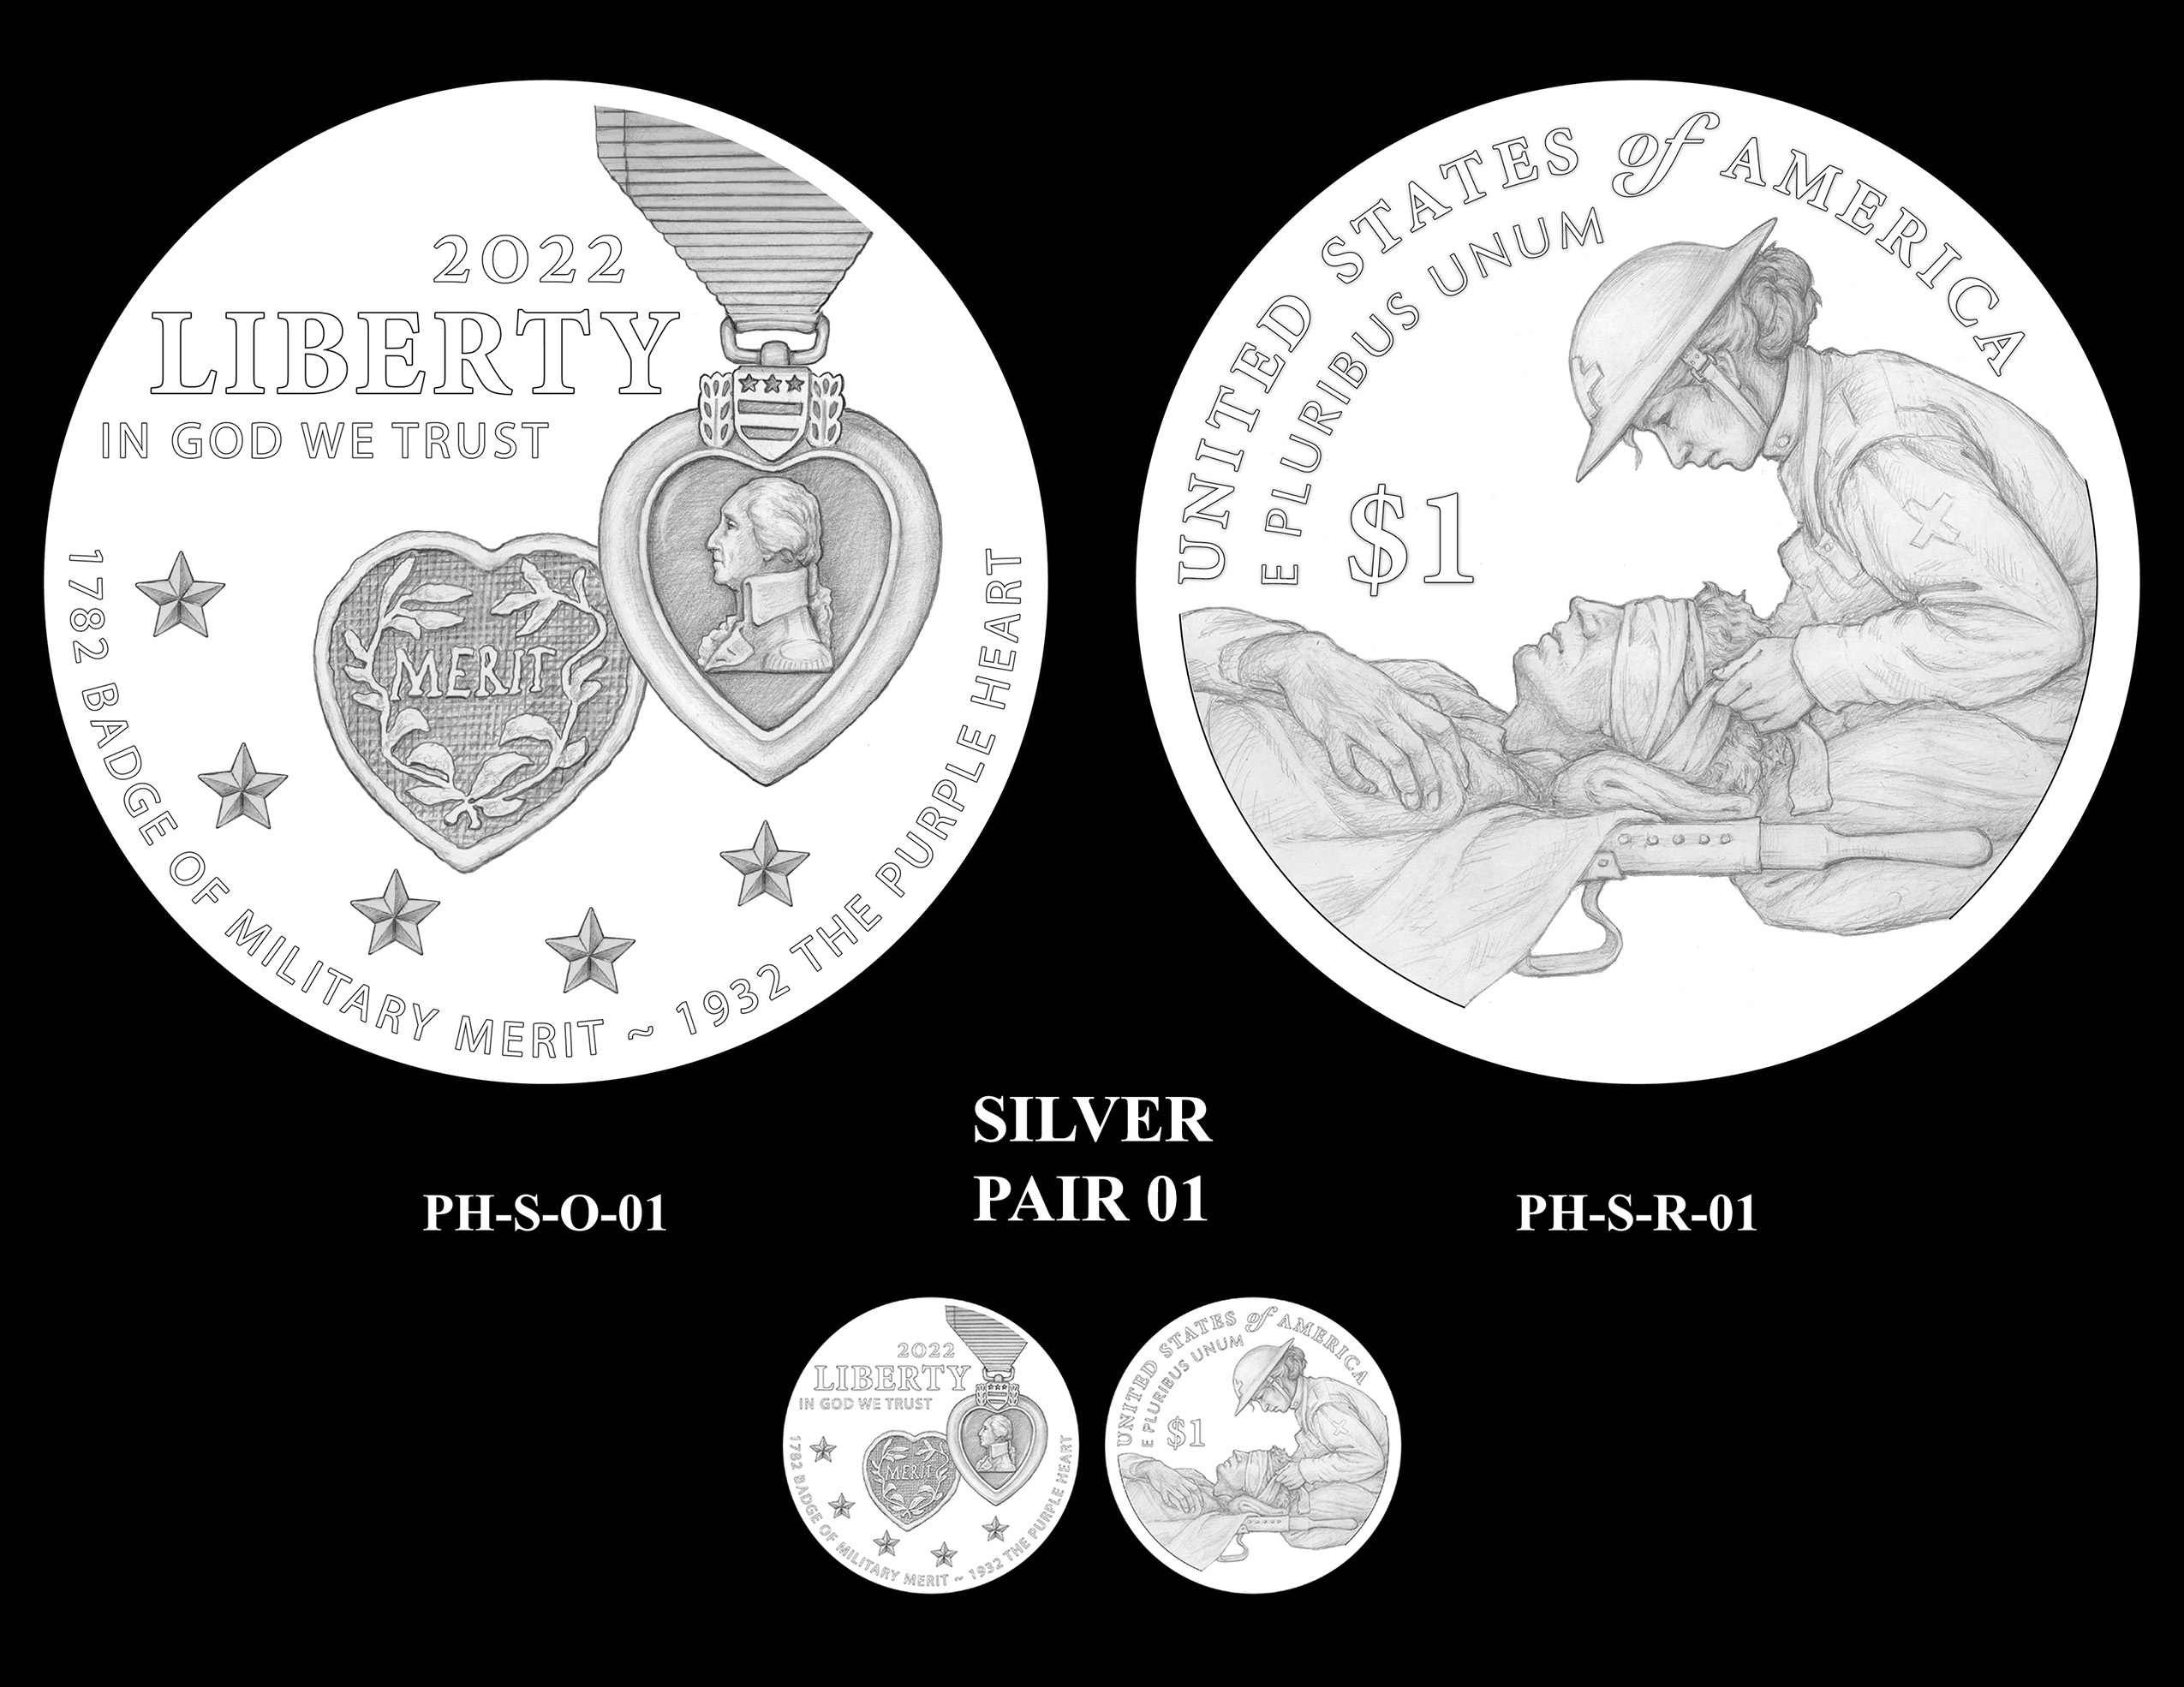 Silver Pair 01 -- National Purple Heart Hall of Honor Commemorative Coin Program